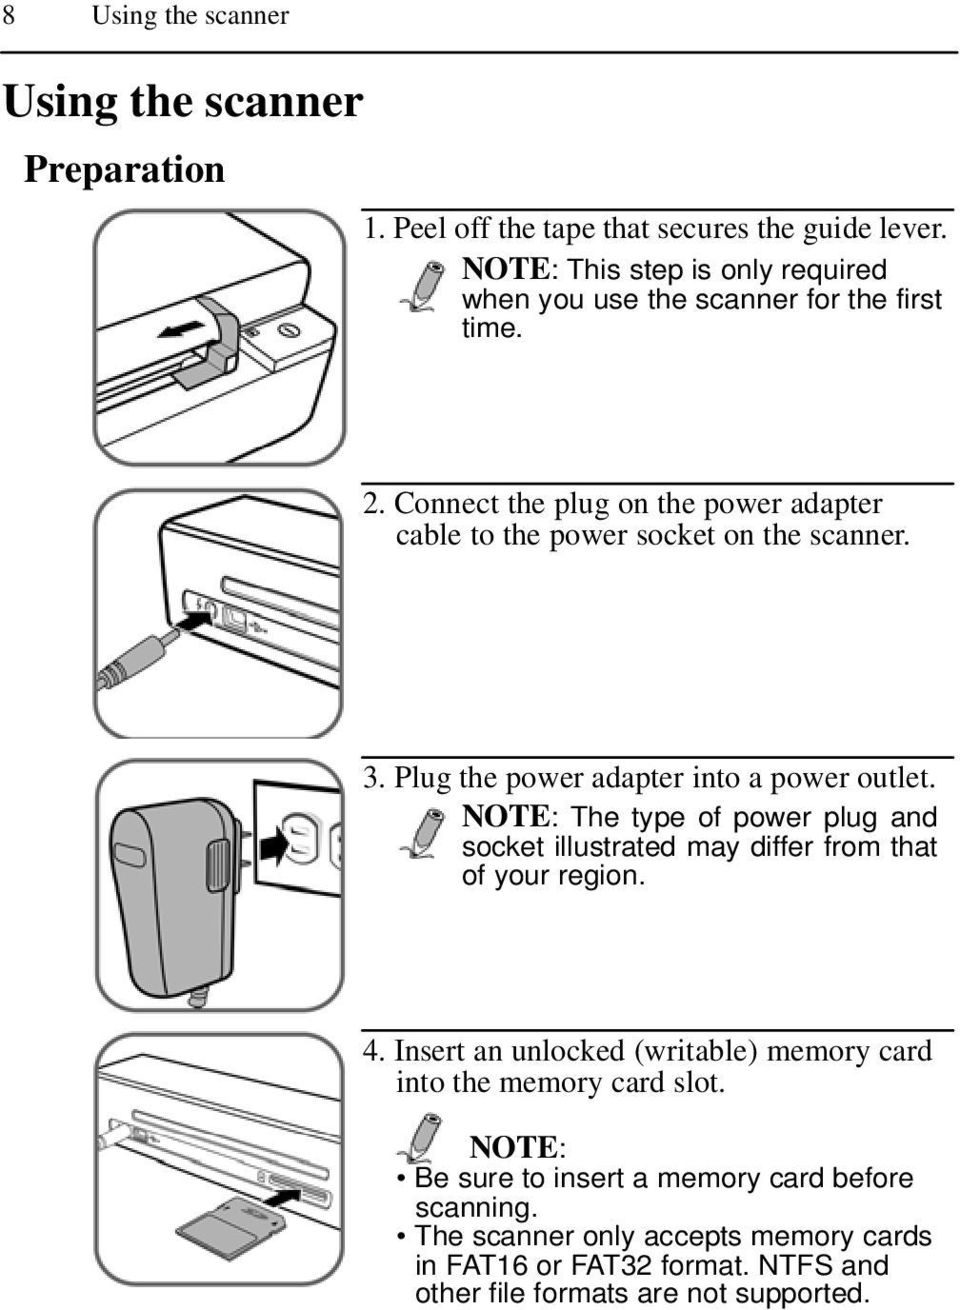 3. Plug the power adapter into a power outlet. NOTE: The type of power plug and socket illustrated may differ from that of your region. 4.